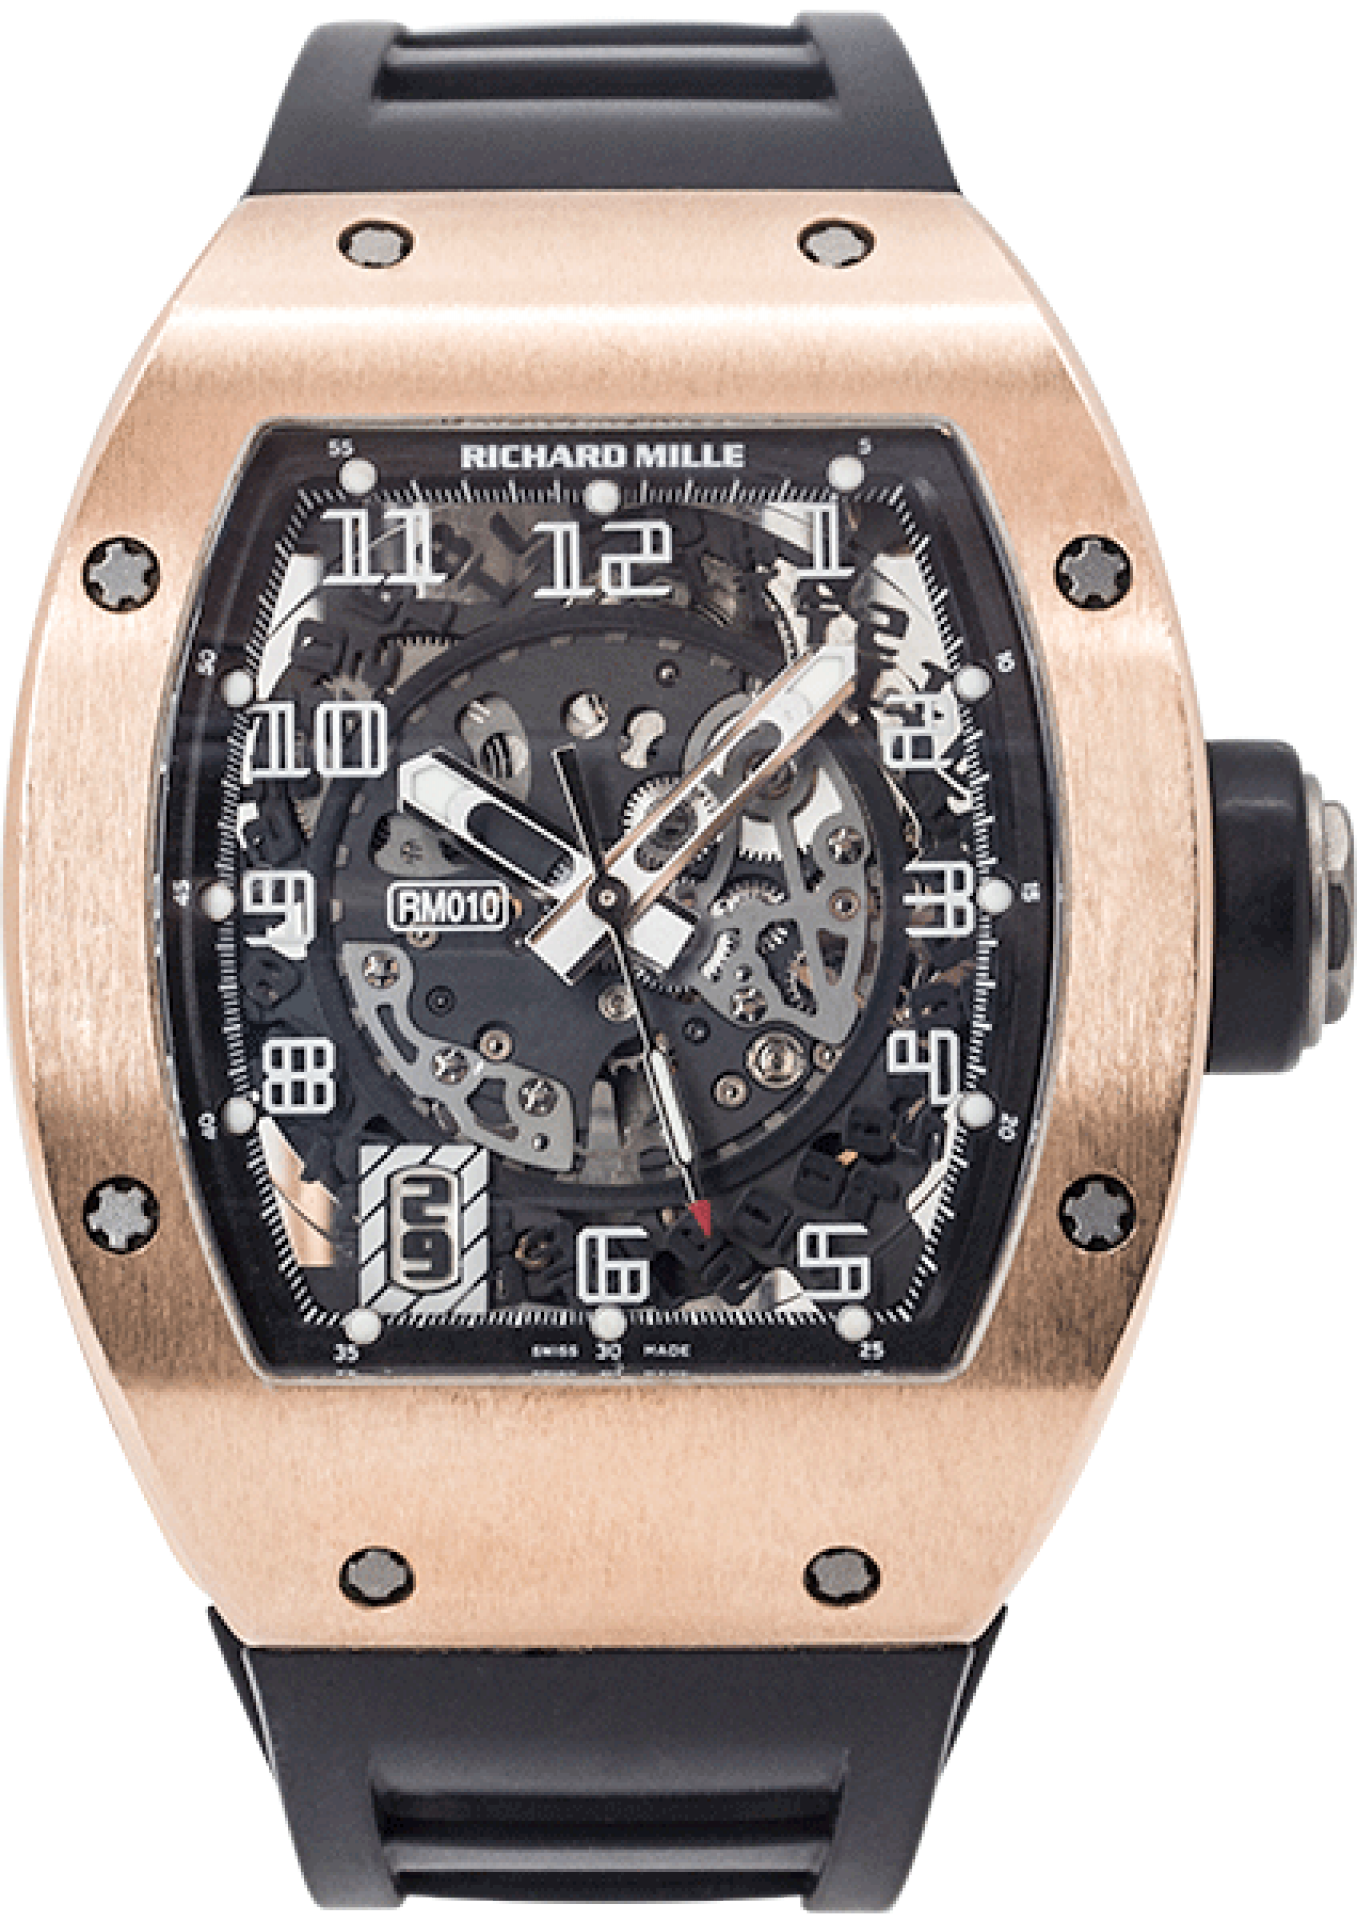 Richard Mille RM 010 Automatic Rose Gold AH RG.